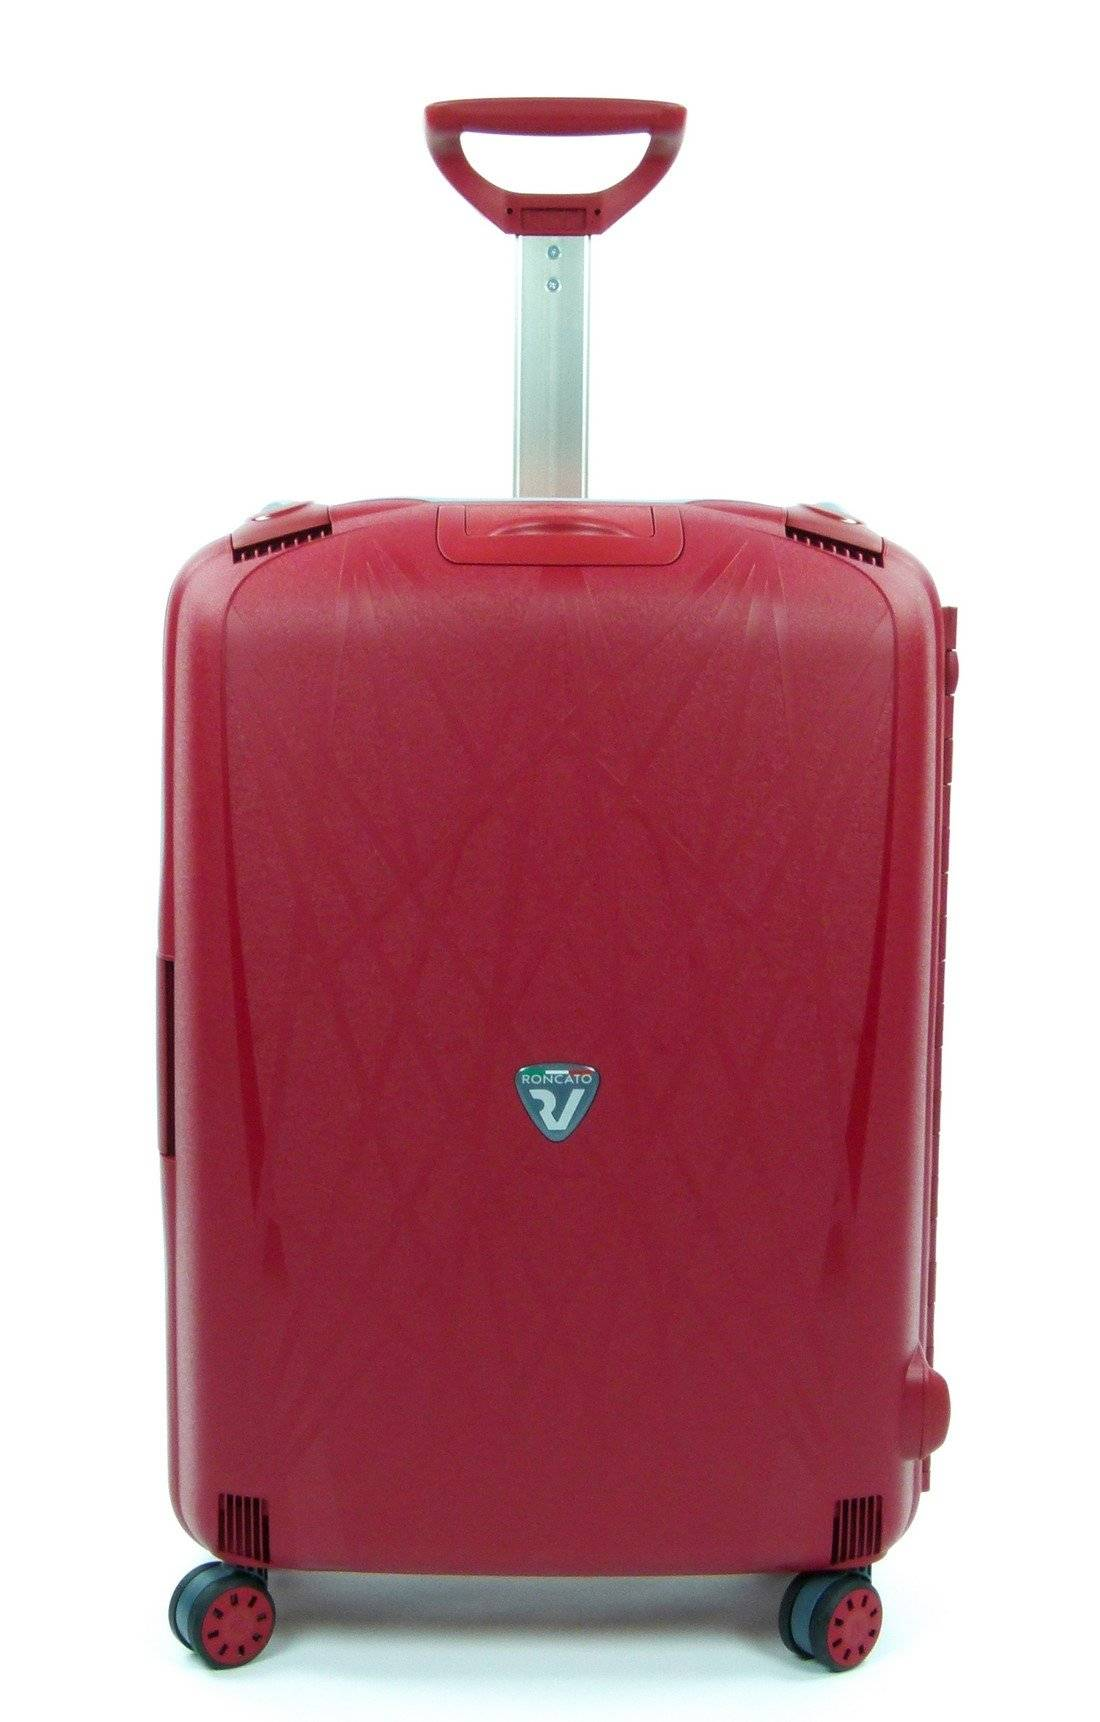 Roncato Trolley Roncato Light 4 ruote medio Rosso art. 712